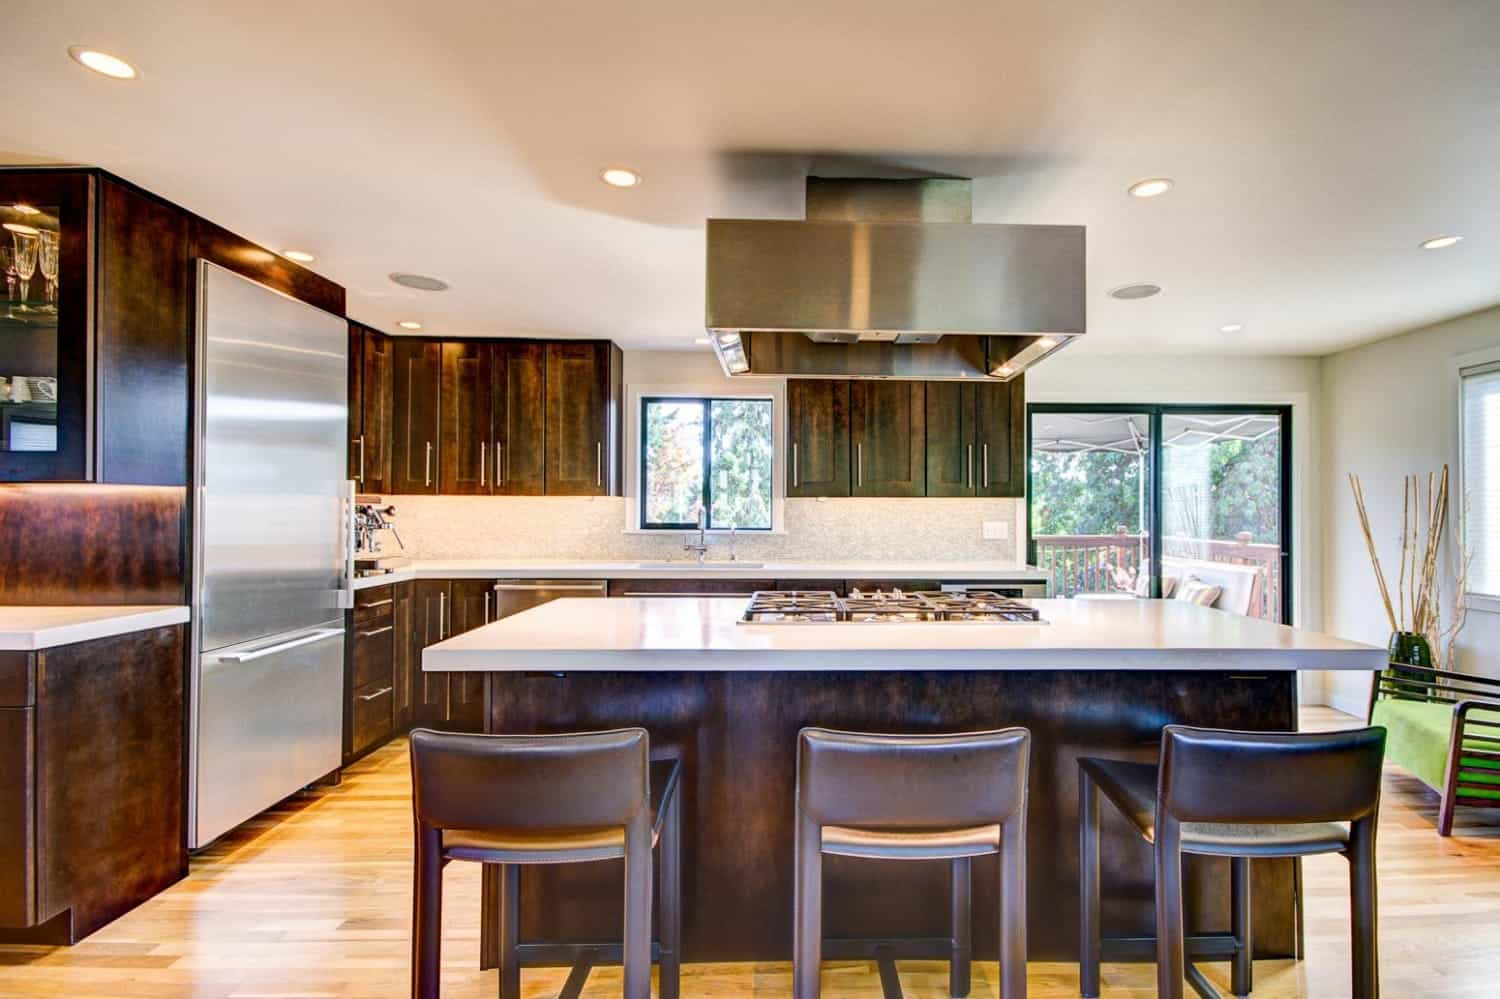 Tranquil Asian Inspired Kitchen Boasts Dark Wood Accents (Image 31 of 32)